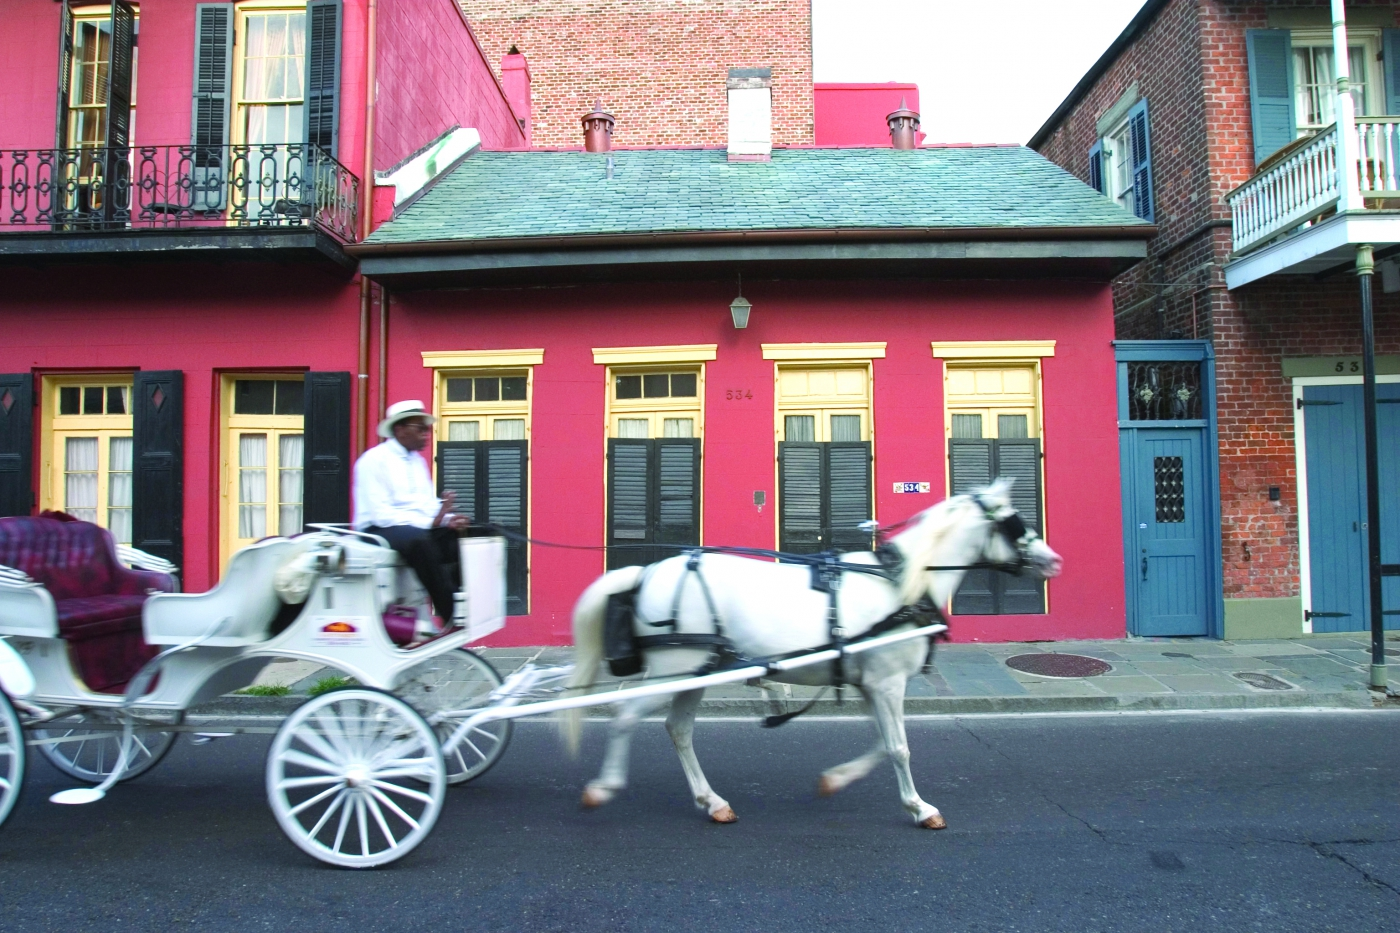 Horse and carriage rides are a great way to get around town in Louisiana!